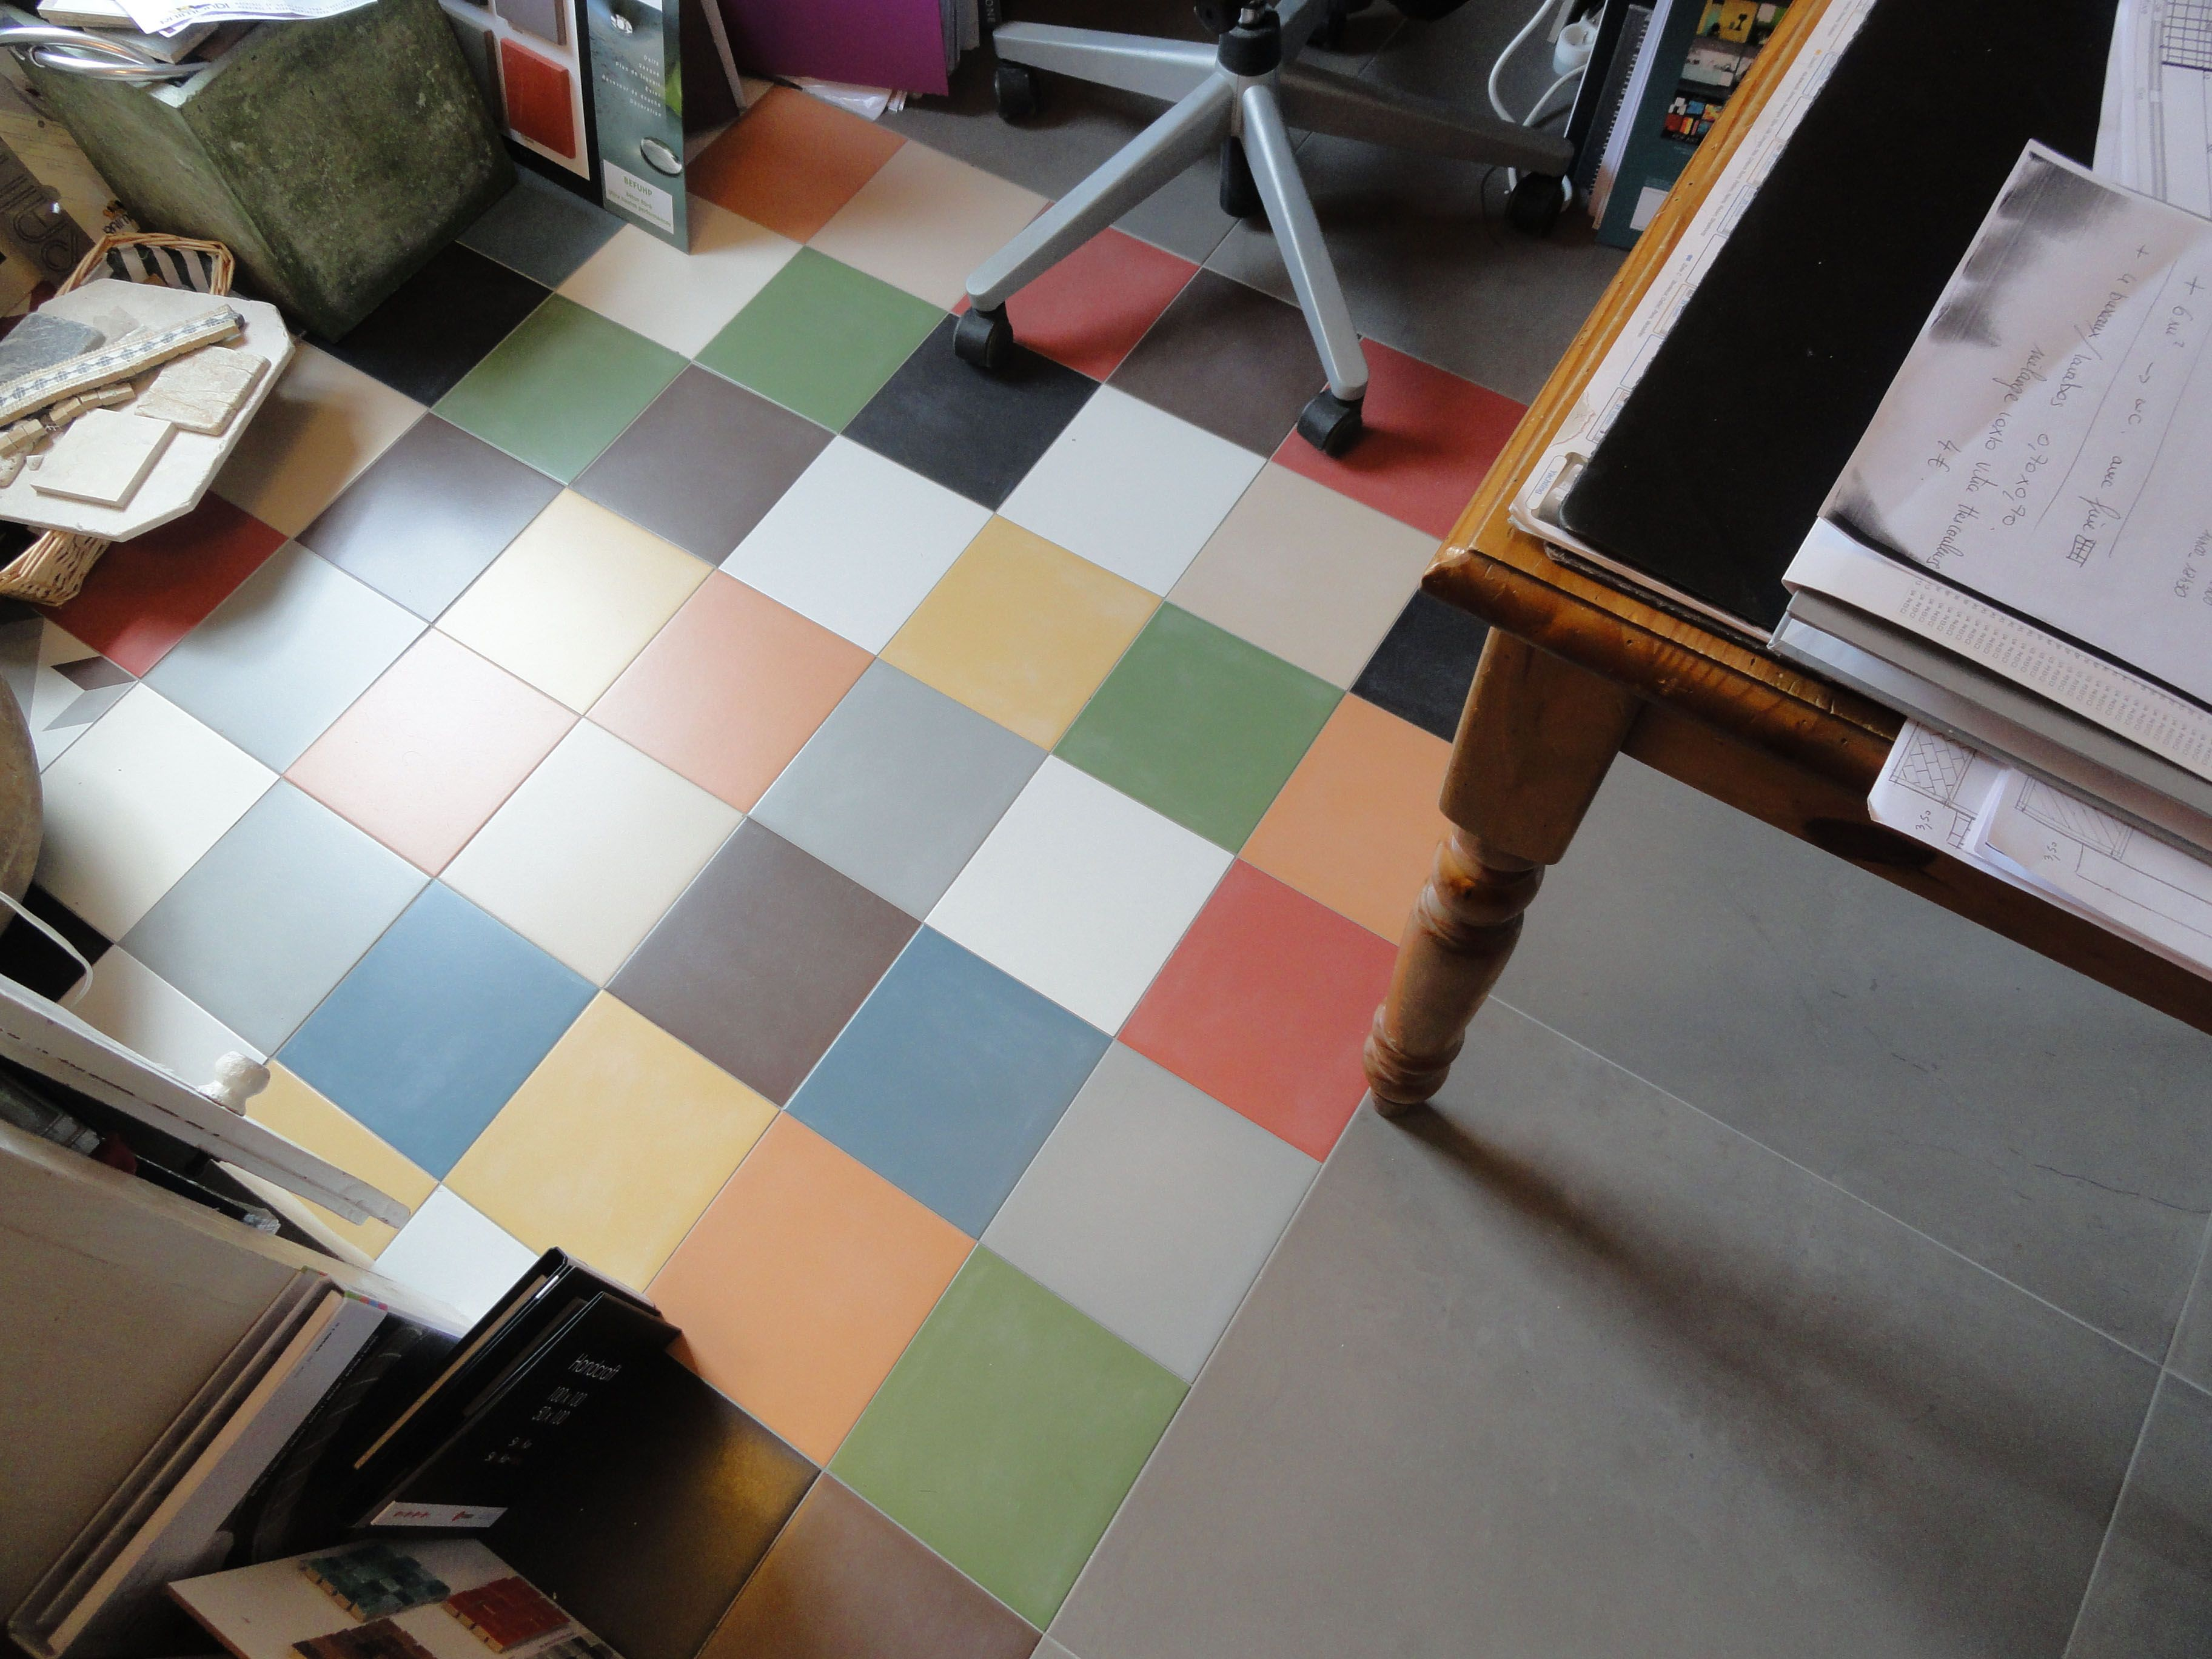 Patchwork colors from neocim collection by kerion for Carrelage kerion